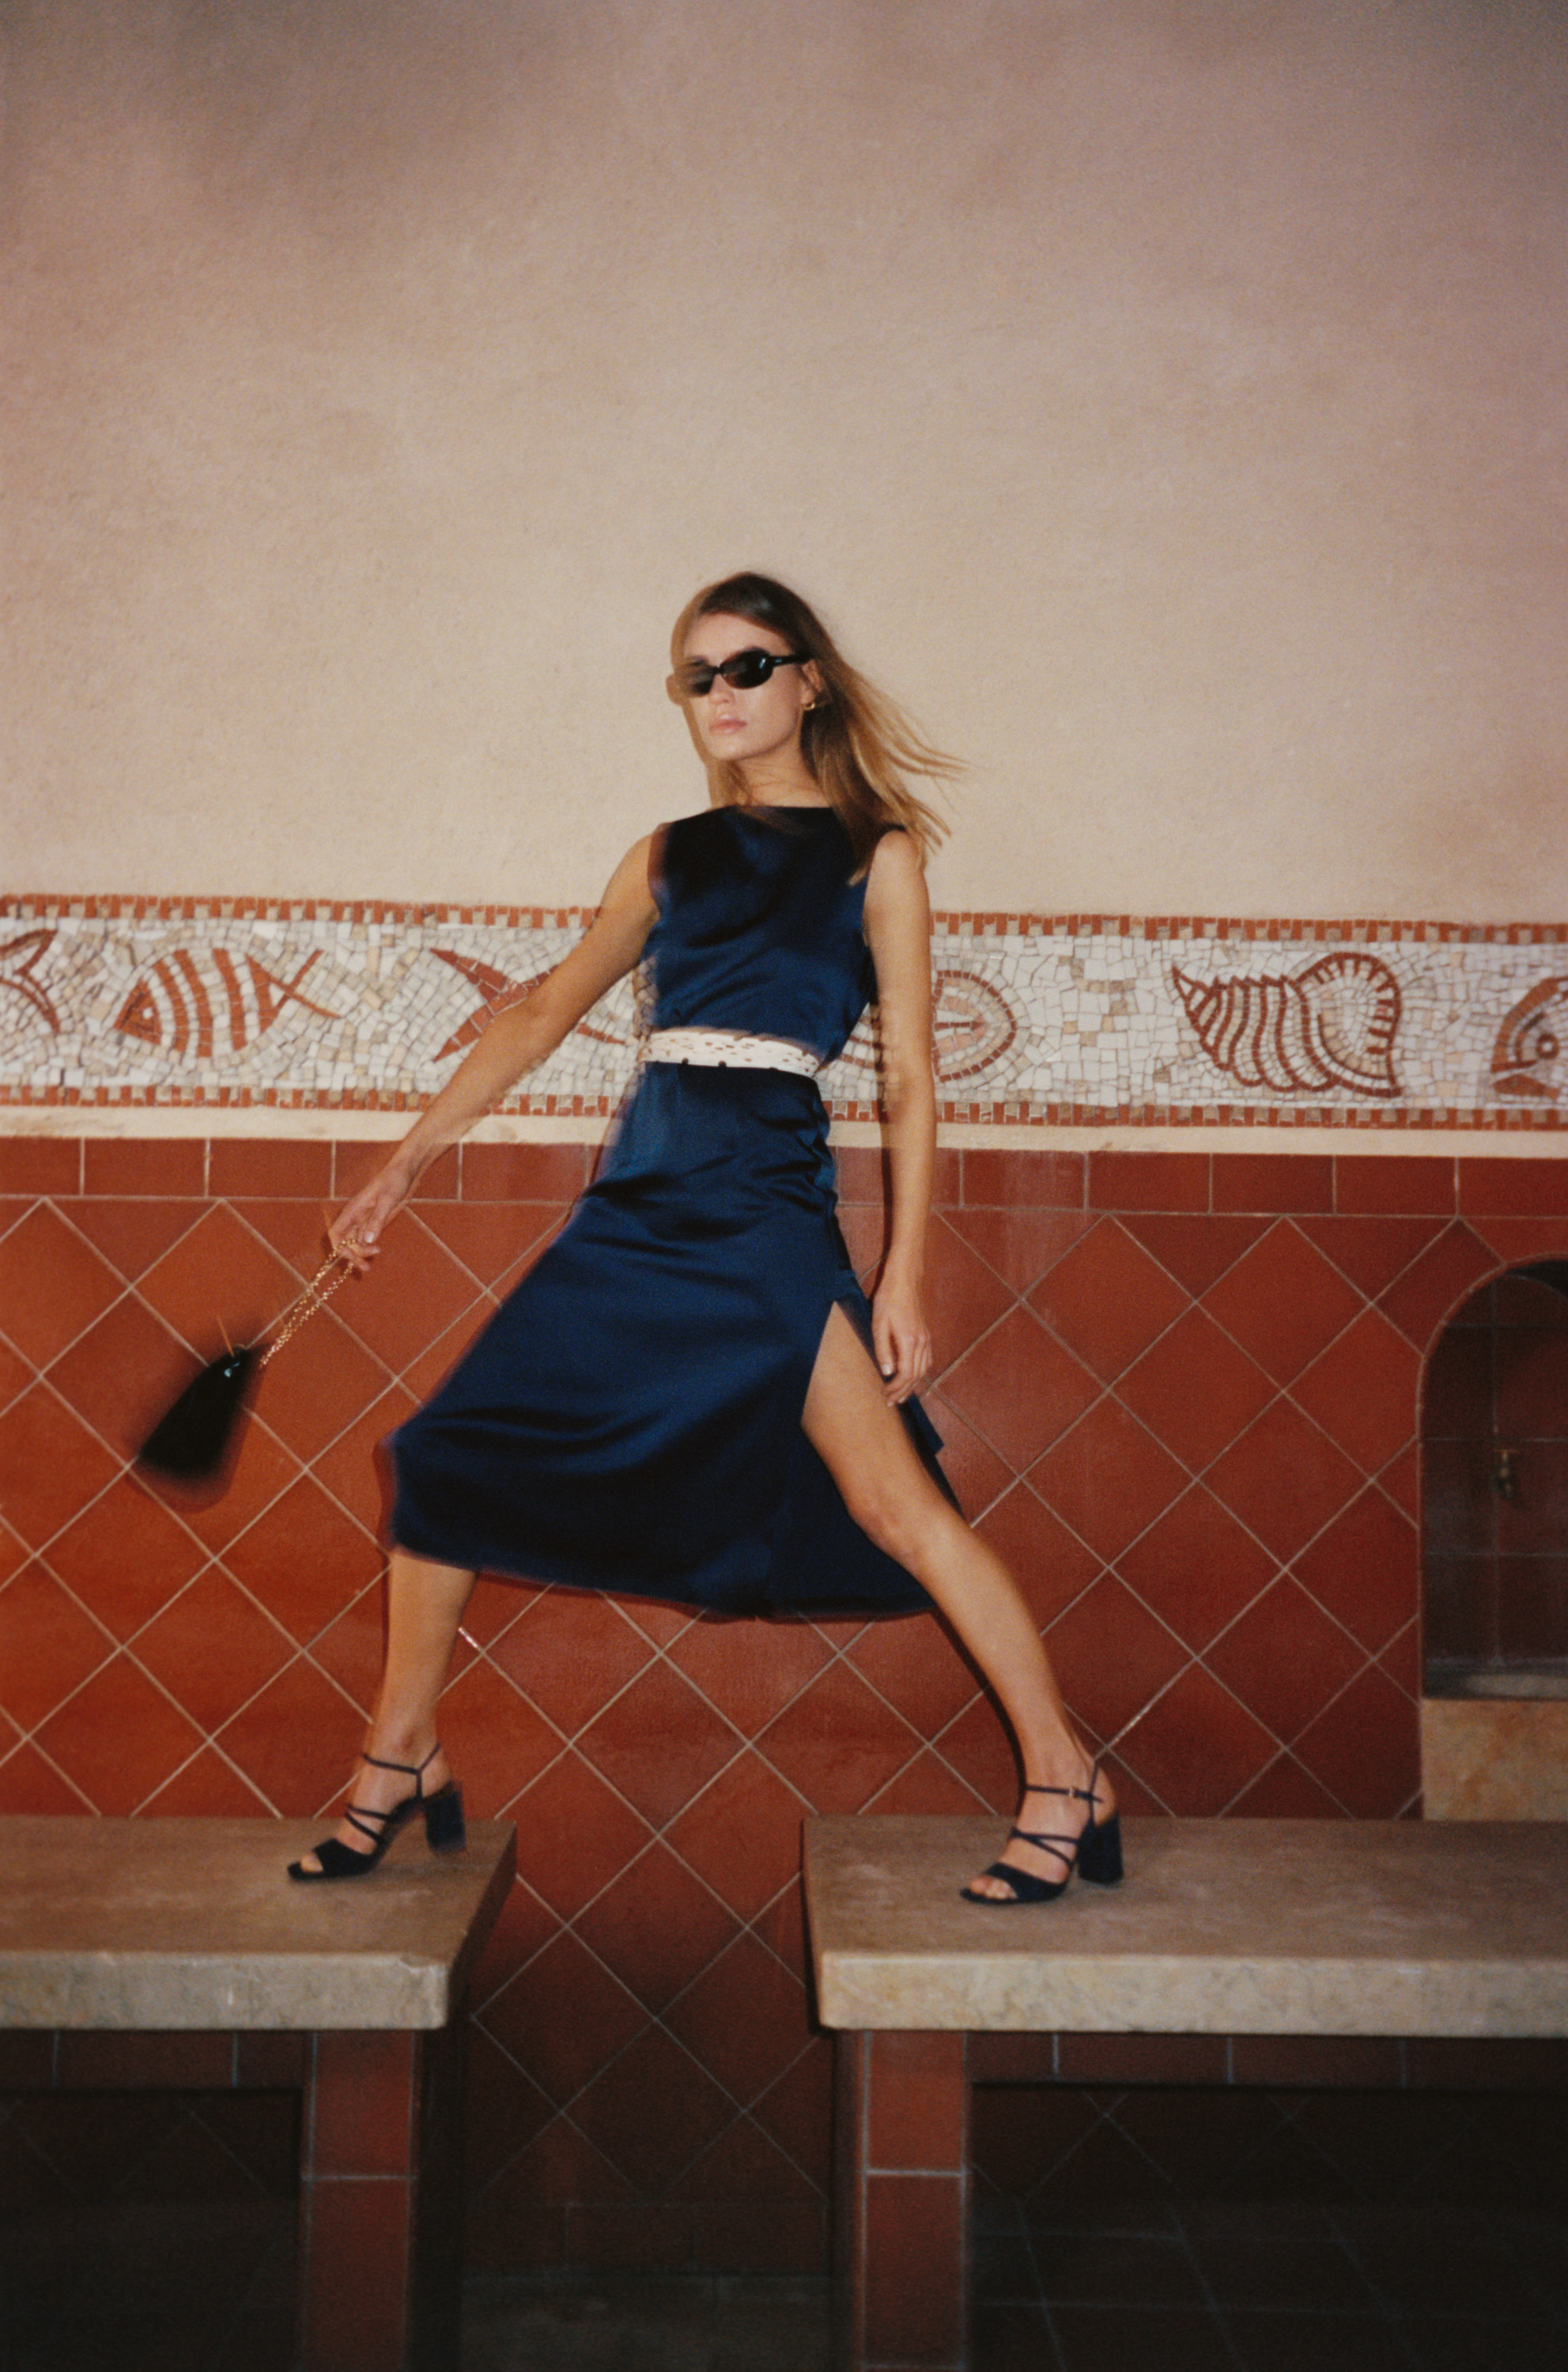 Photographed by Camille Summers-Valli for Mirae Paris